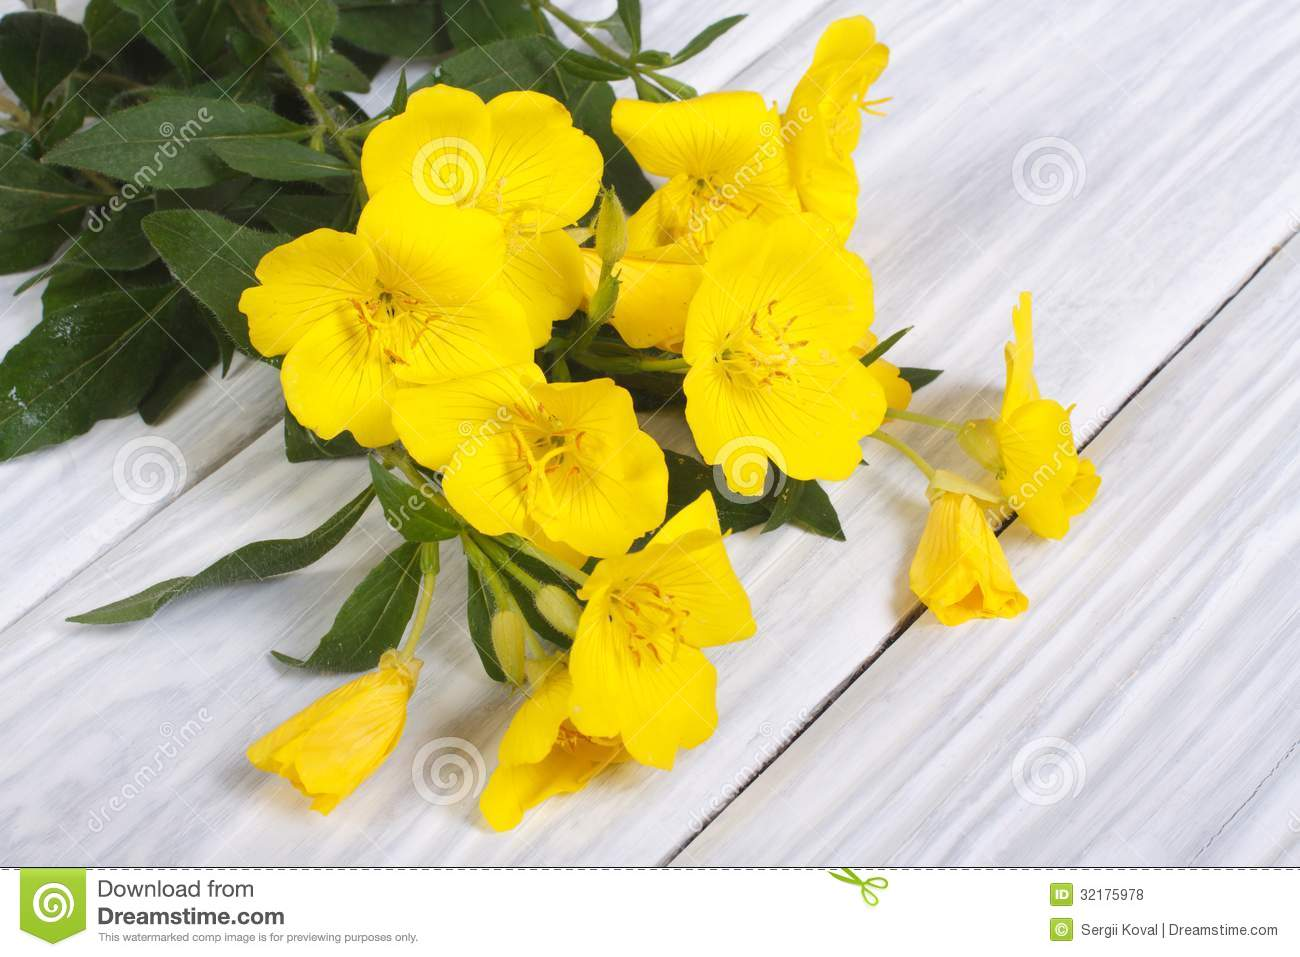 Bouquet of yellow flowers oenothera on a wooden table royalty free bouquet of yellow flowers oenothera on a wooden table royalty free stock photos image 32175978 dhlflorist Gallery